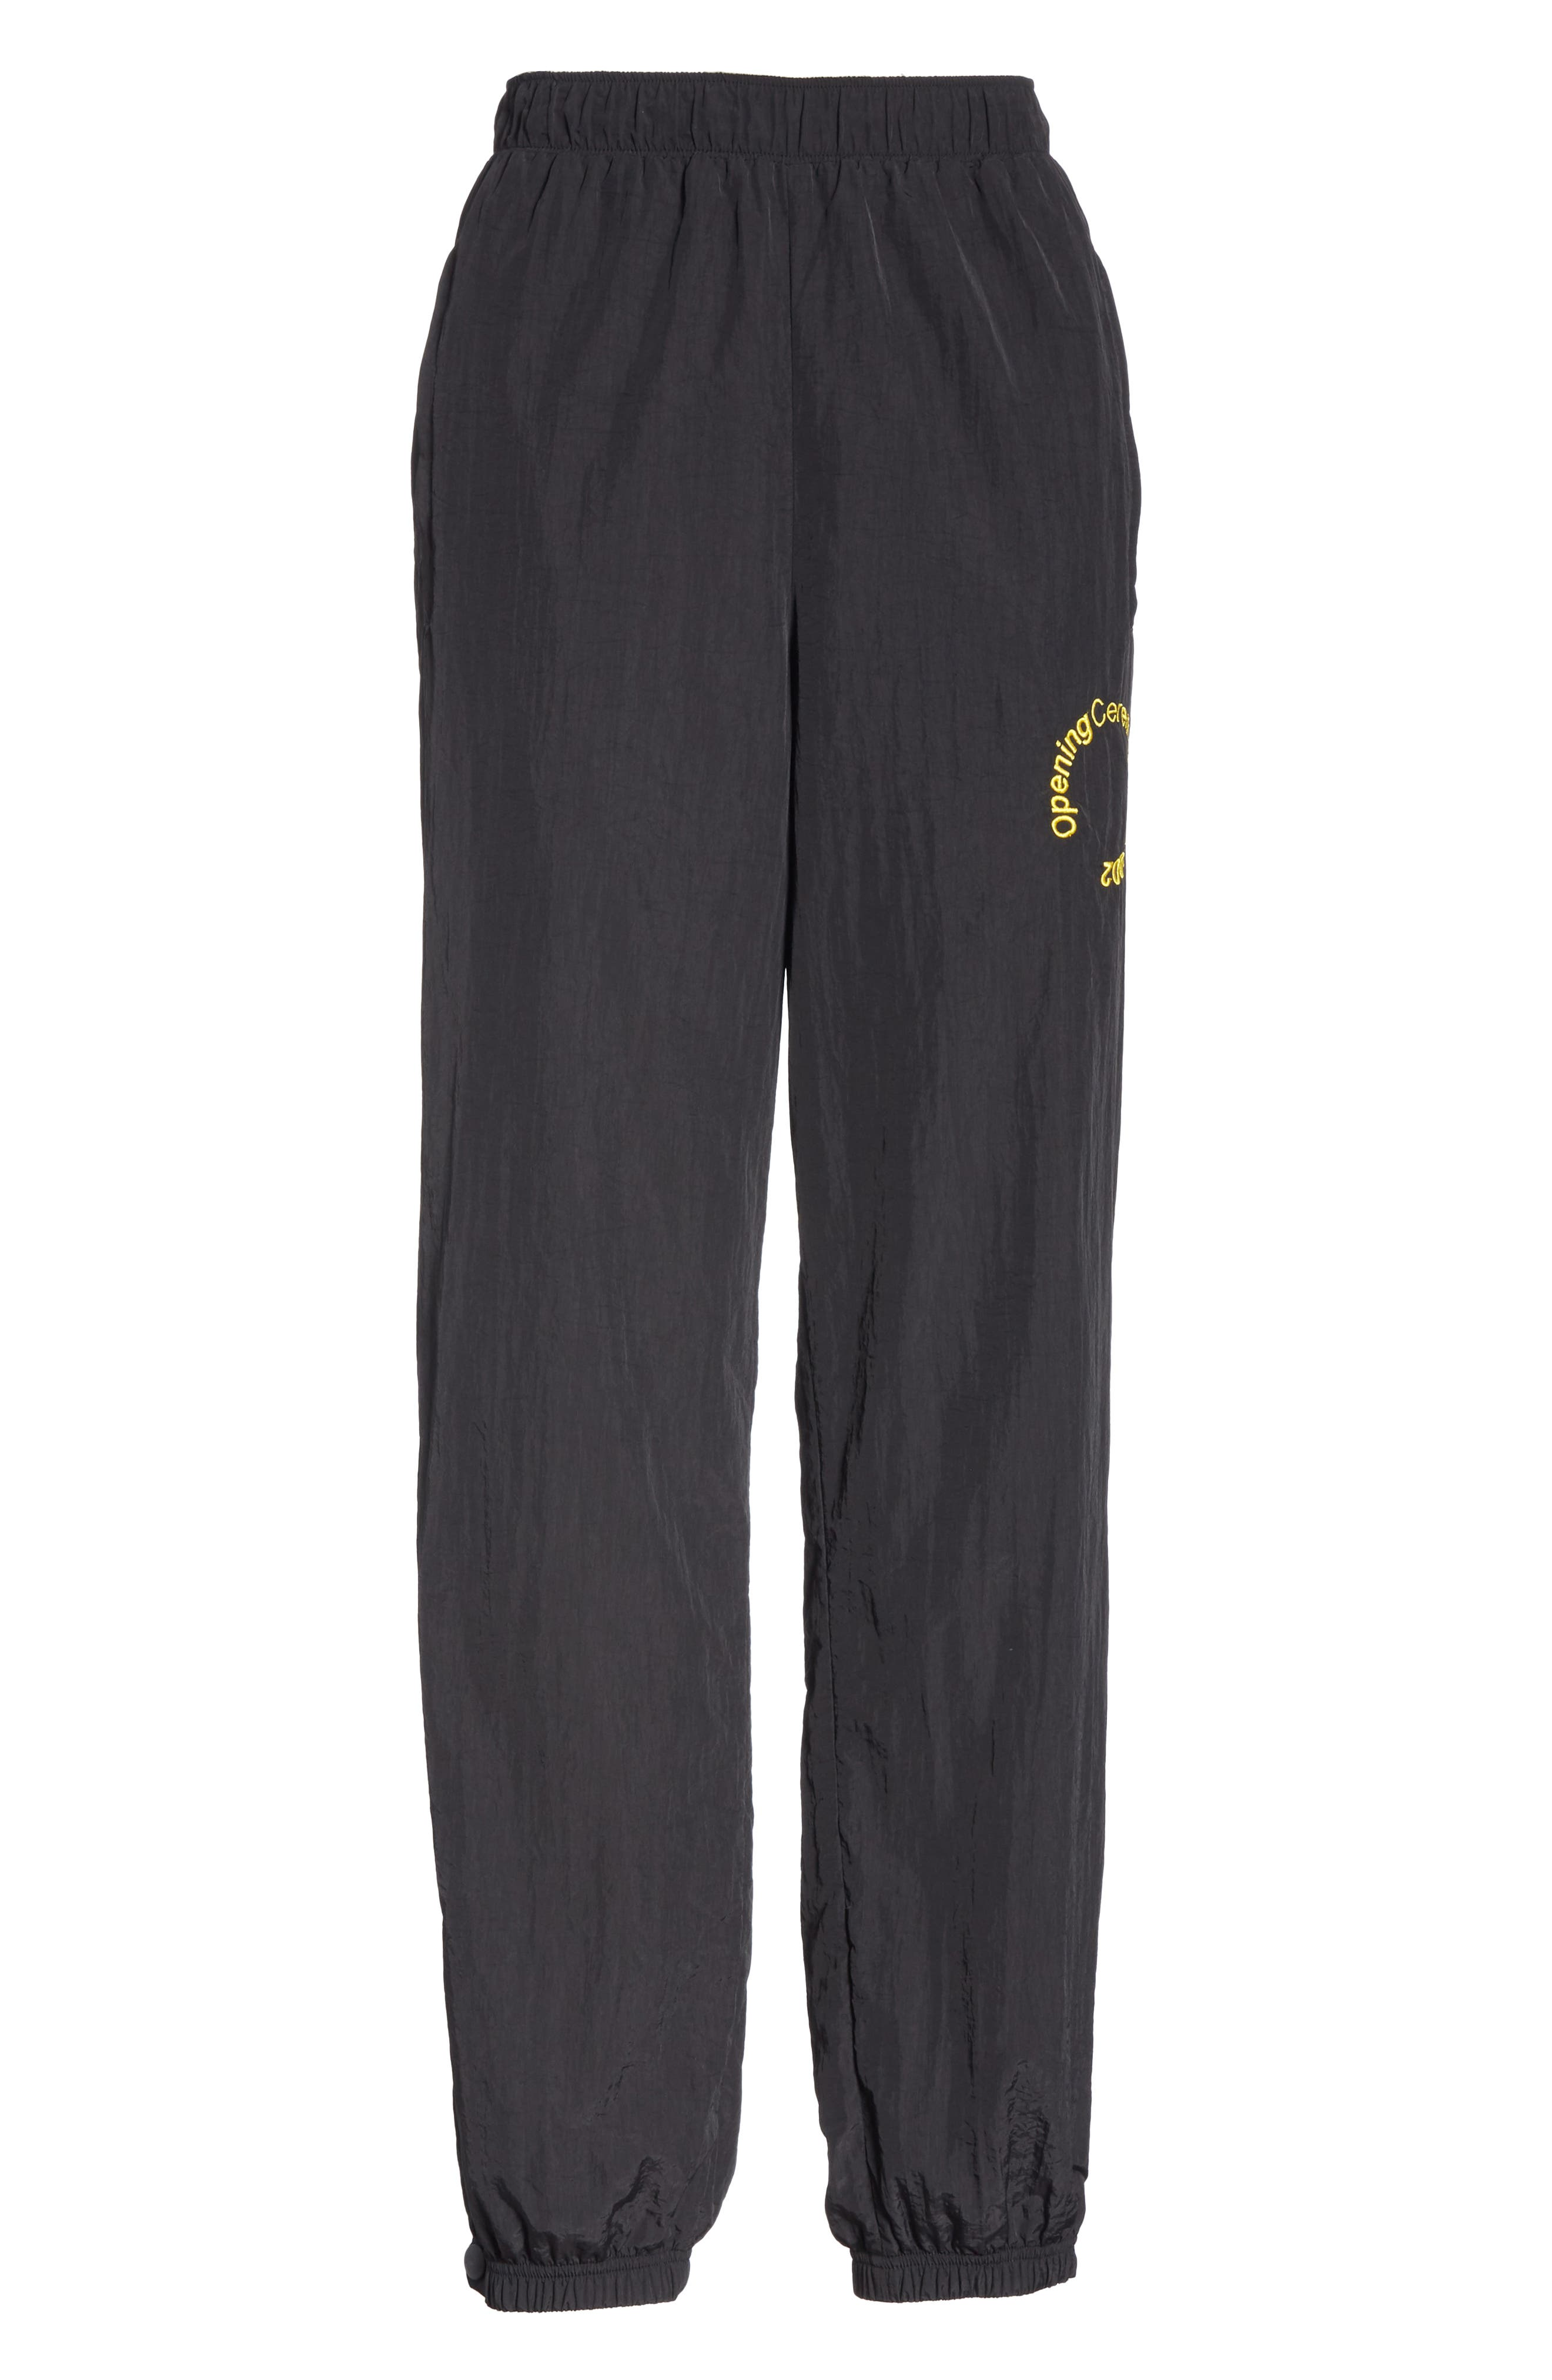 Crinkle Nylon Jogging Pants,                             Alternate thumbnail 6, color,                             BLACK